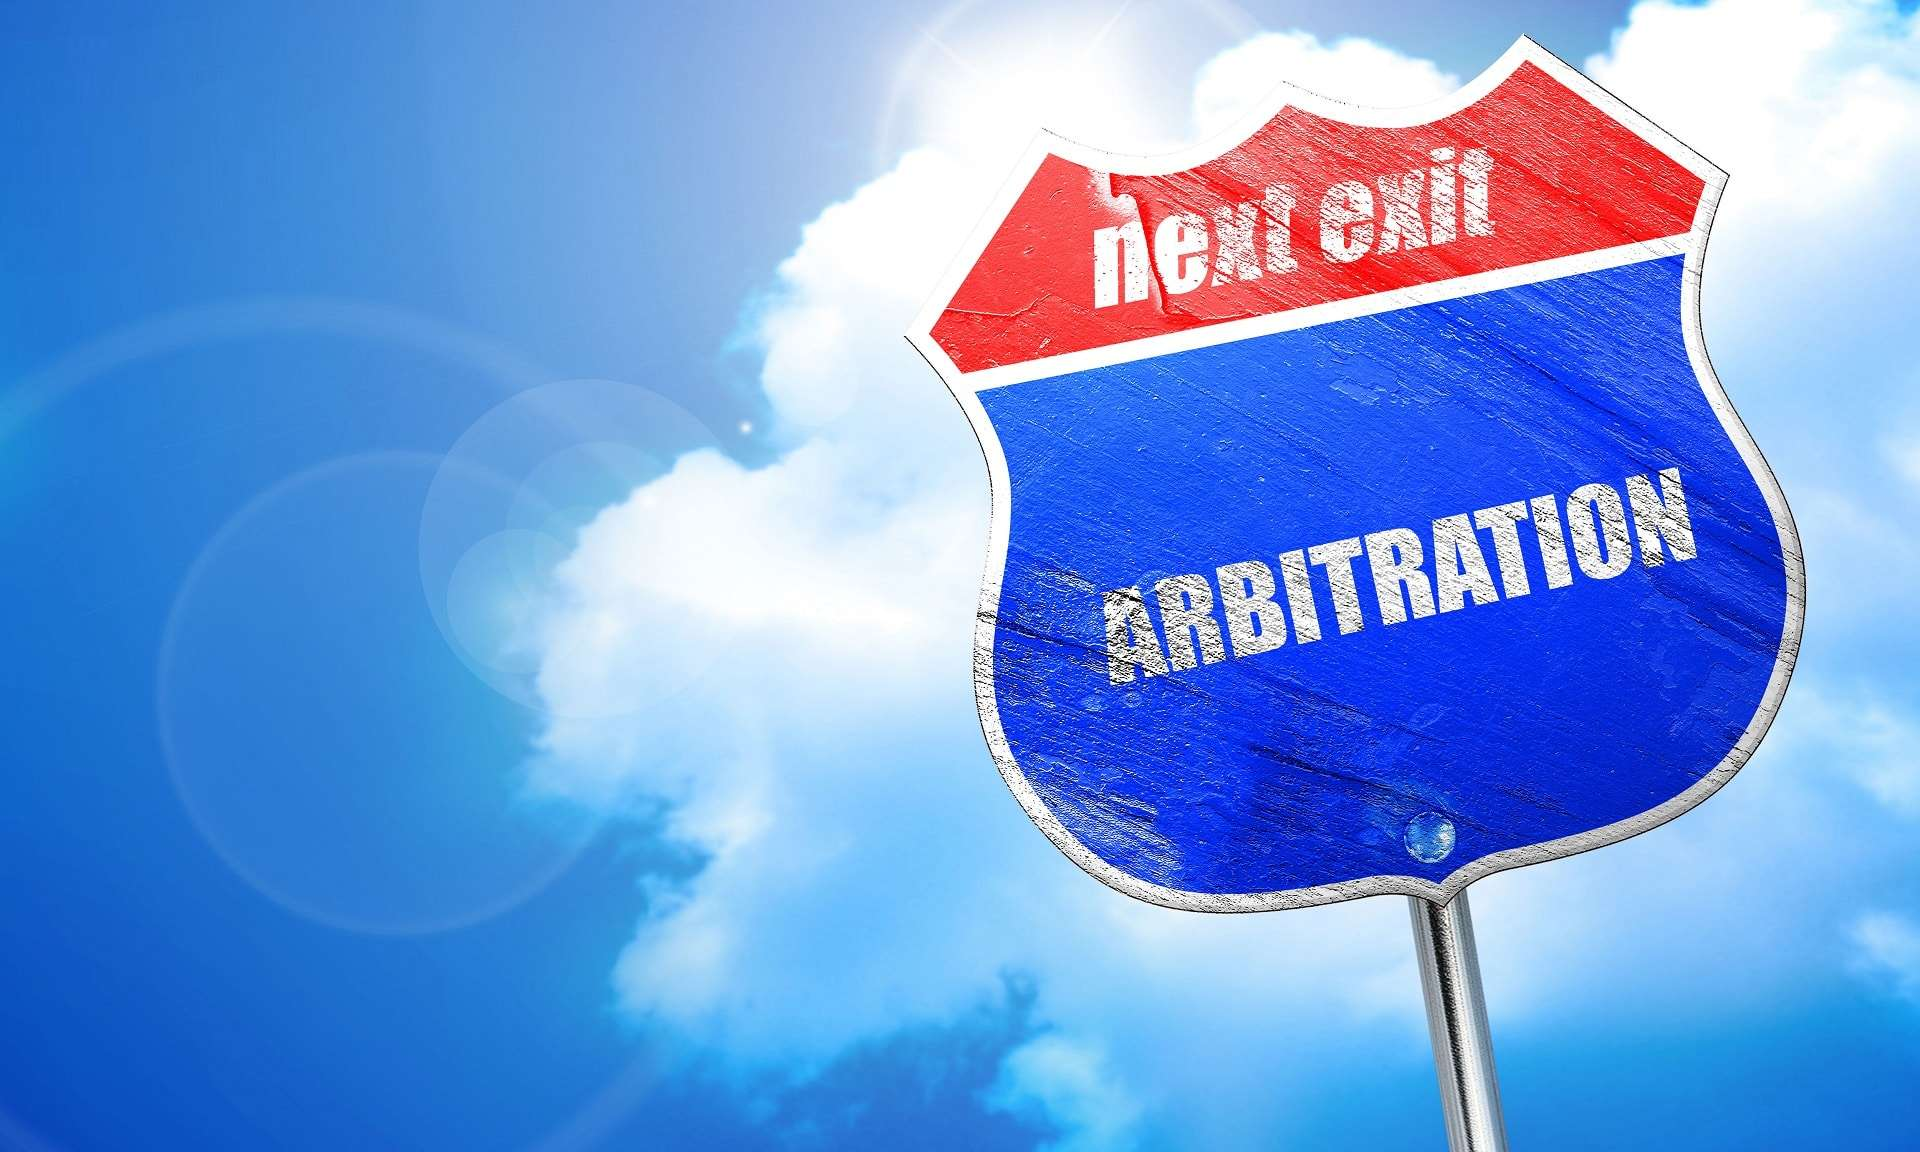 FINRA arbitration case